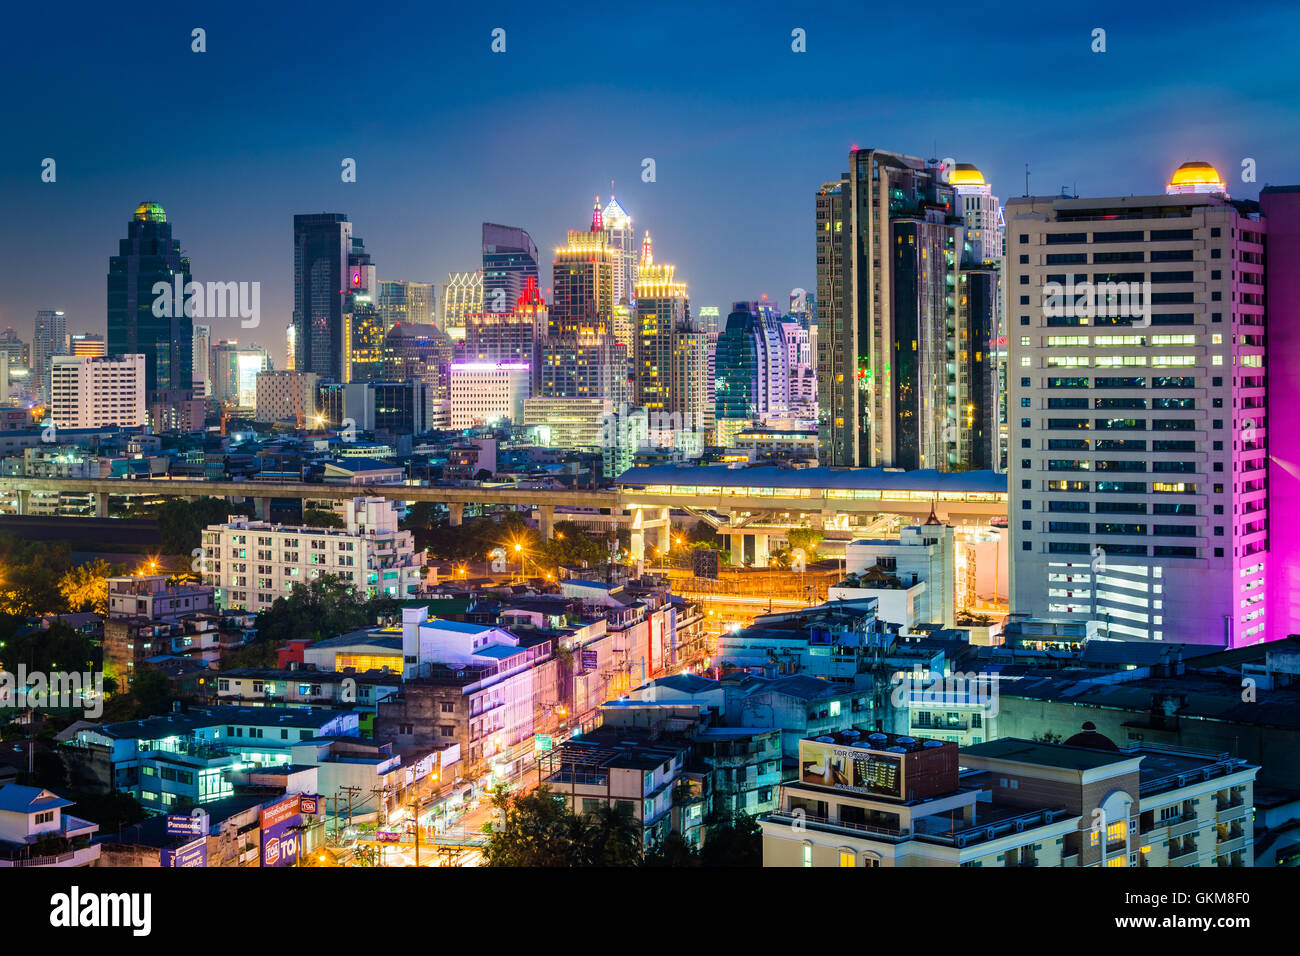 View of modern skyscrapers at night, in Bangkok, Thailand. - Stock Image